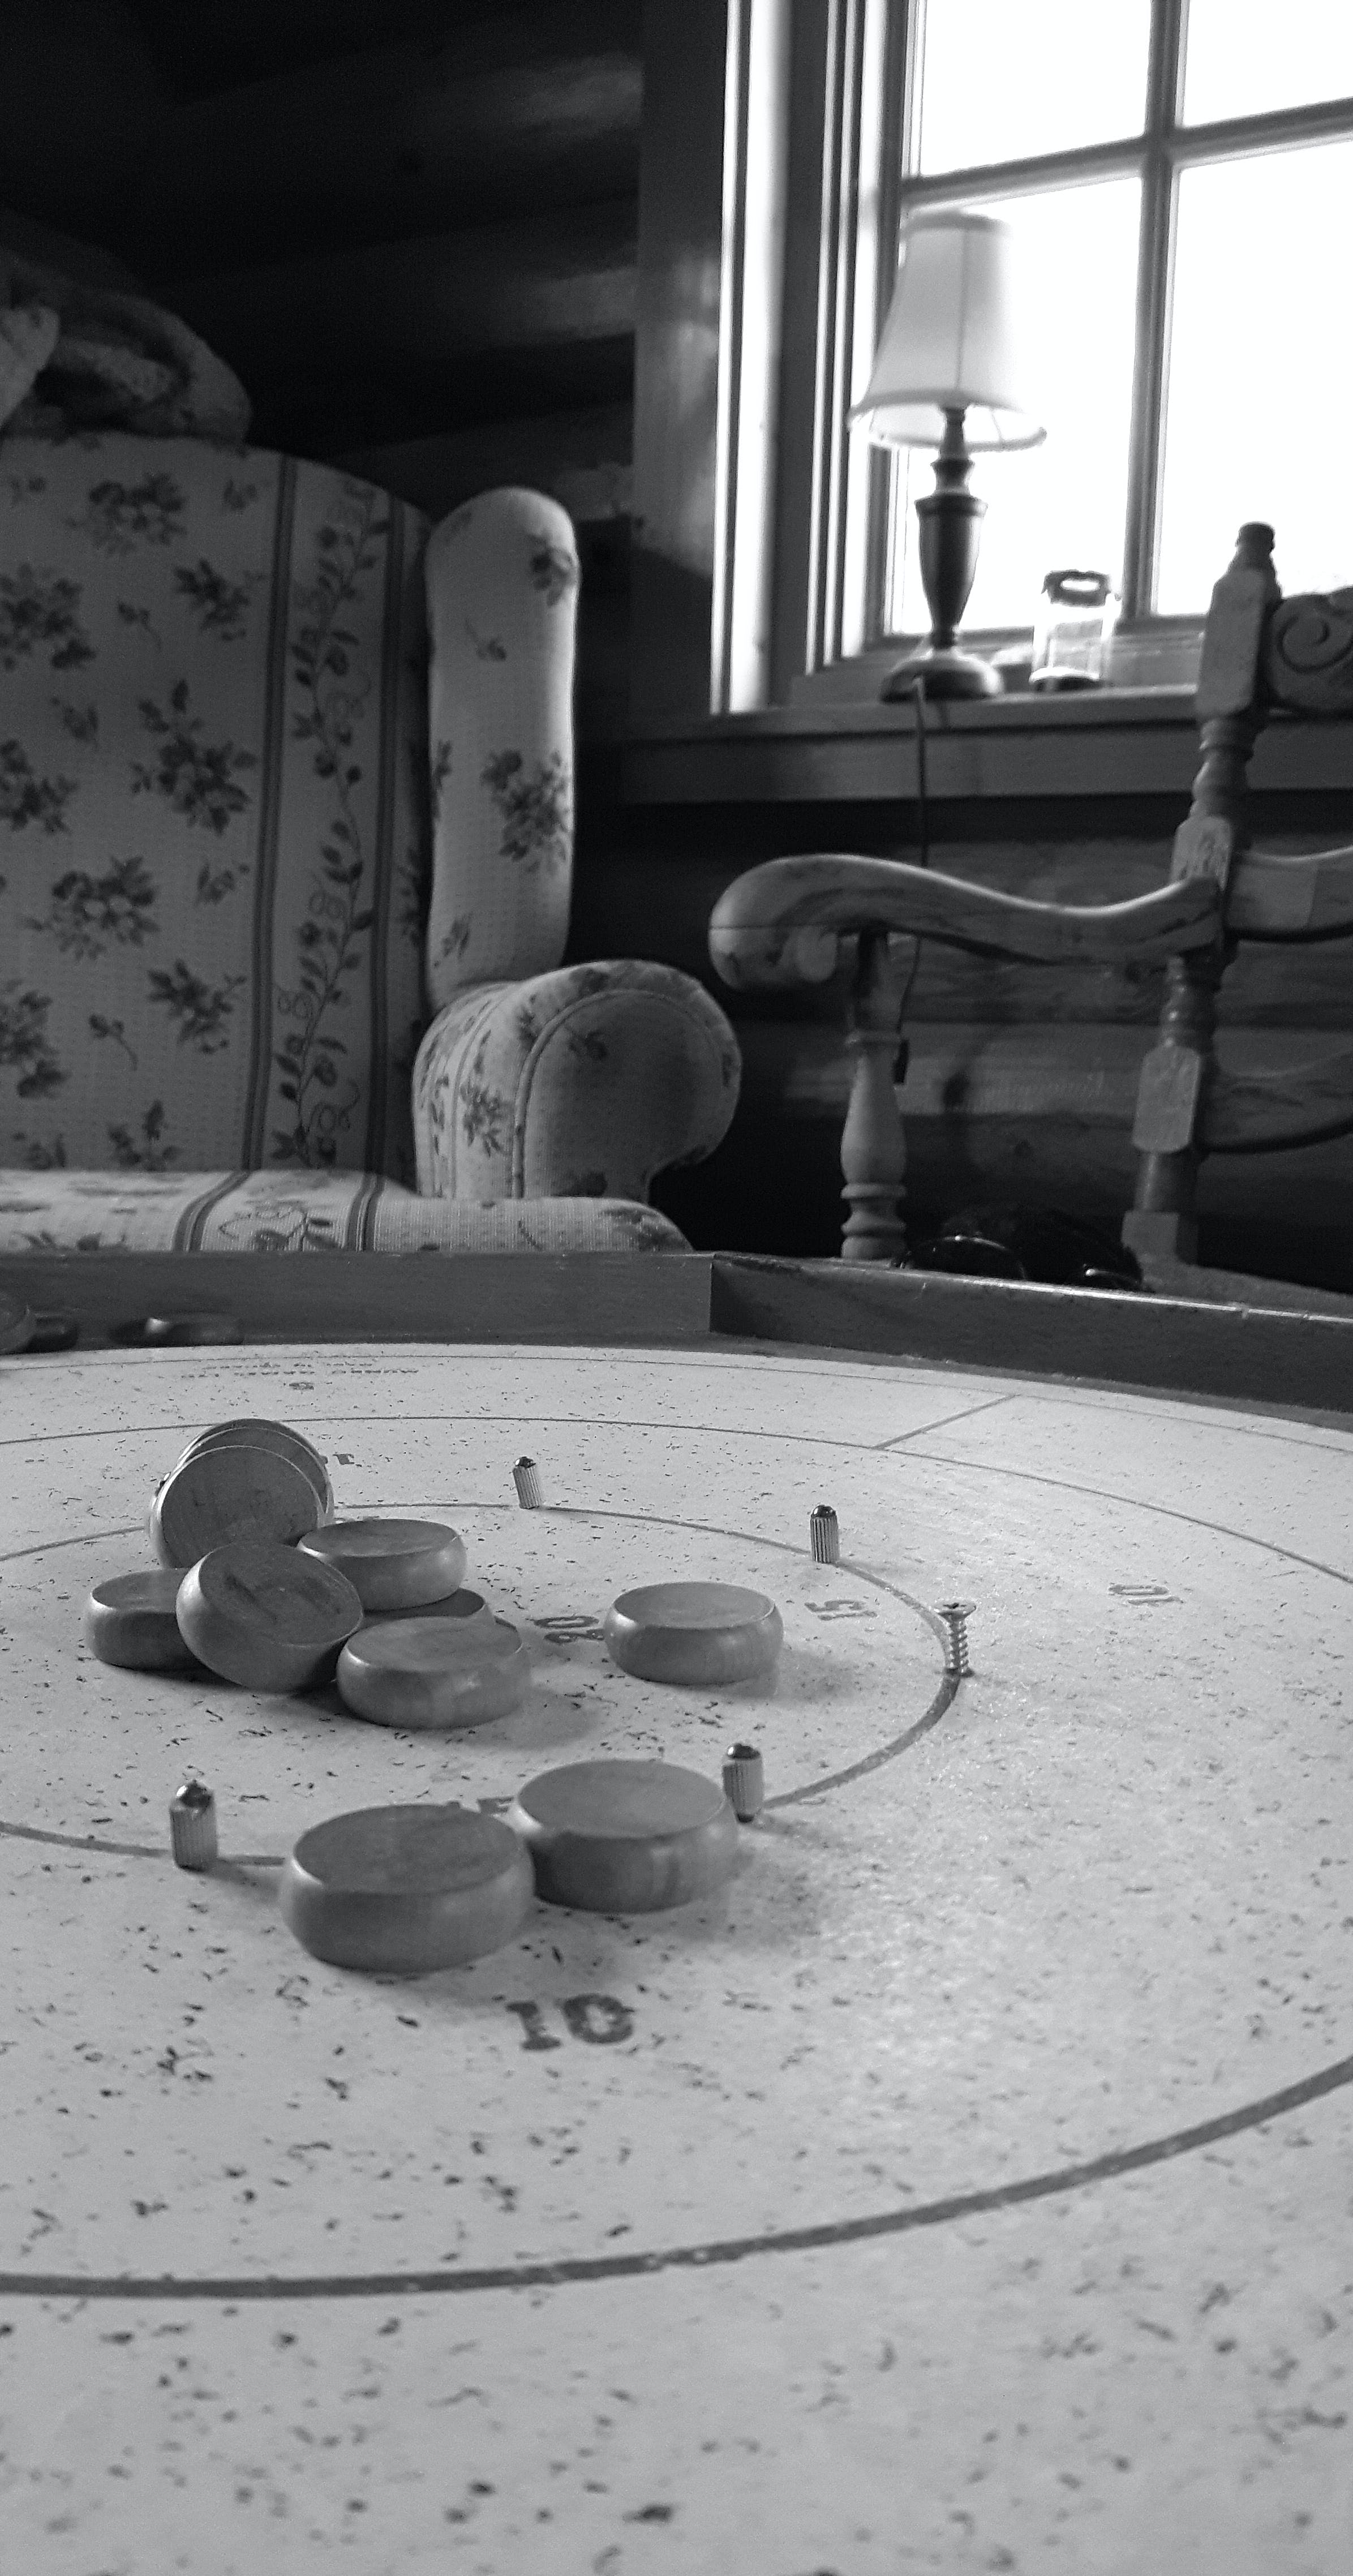 Free stock photo of b&w, black and white, crokinole, games